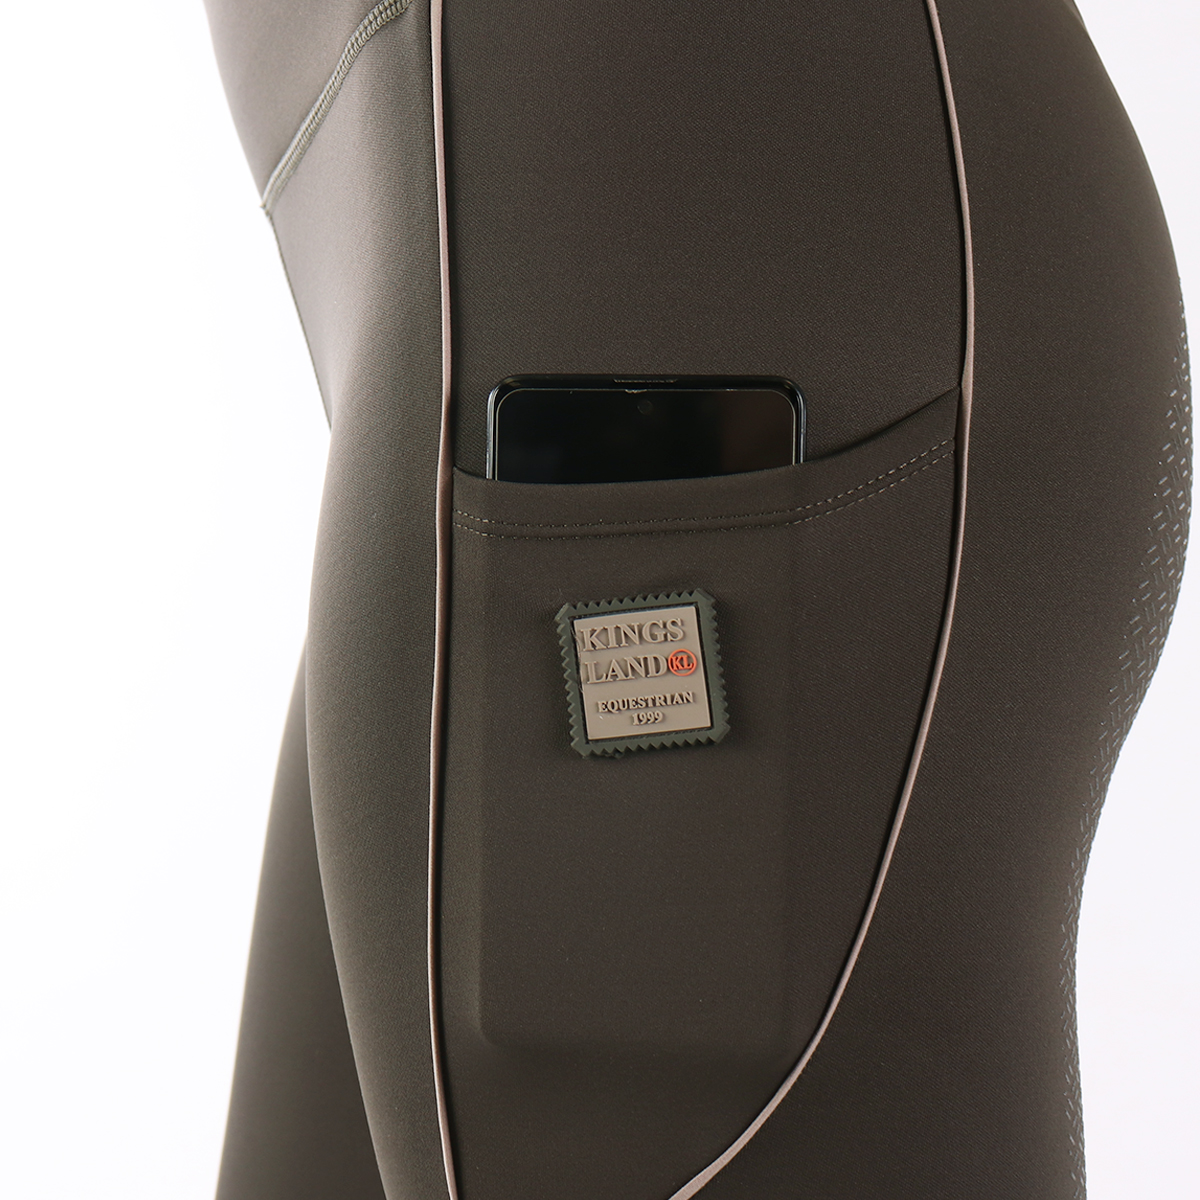 Sneakers Ariat Fuse Ss20, EU 38 - US 7,5in grey